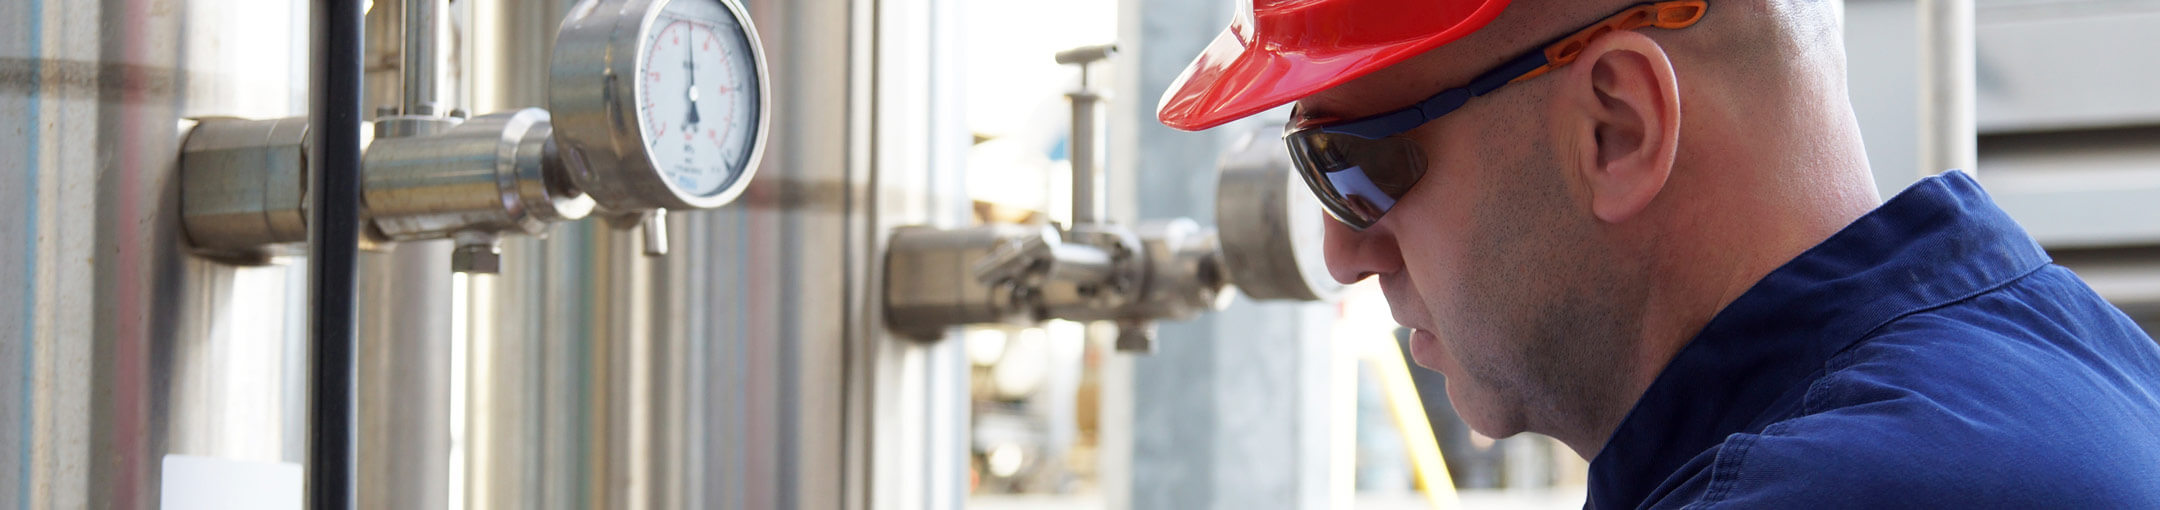 A person wearing a hardhat and eye protection, looking at gauges on equipment.